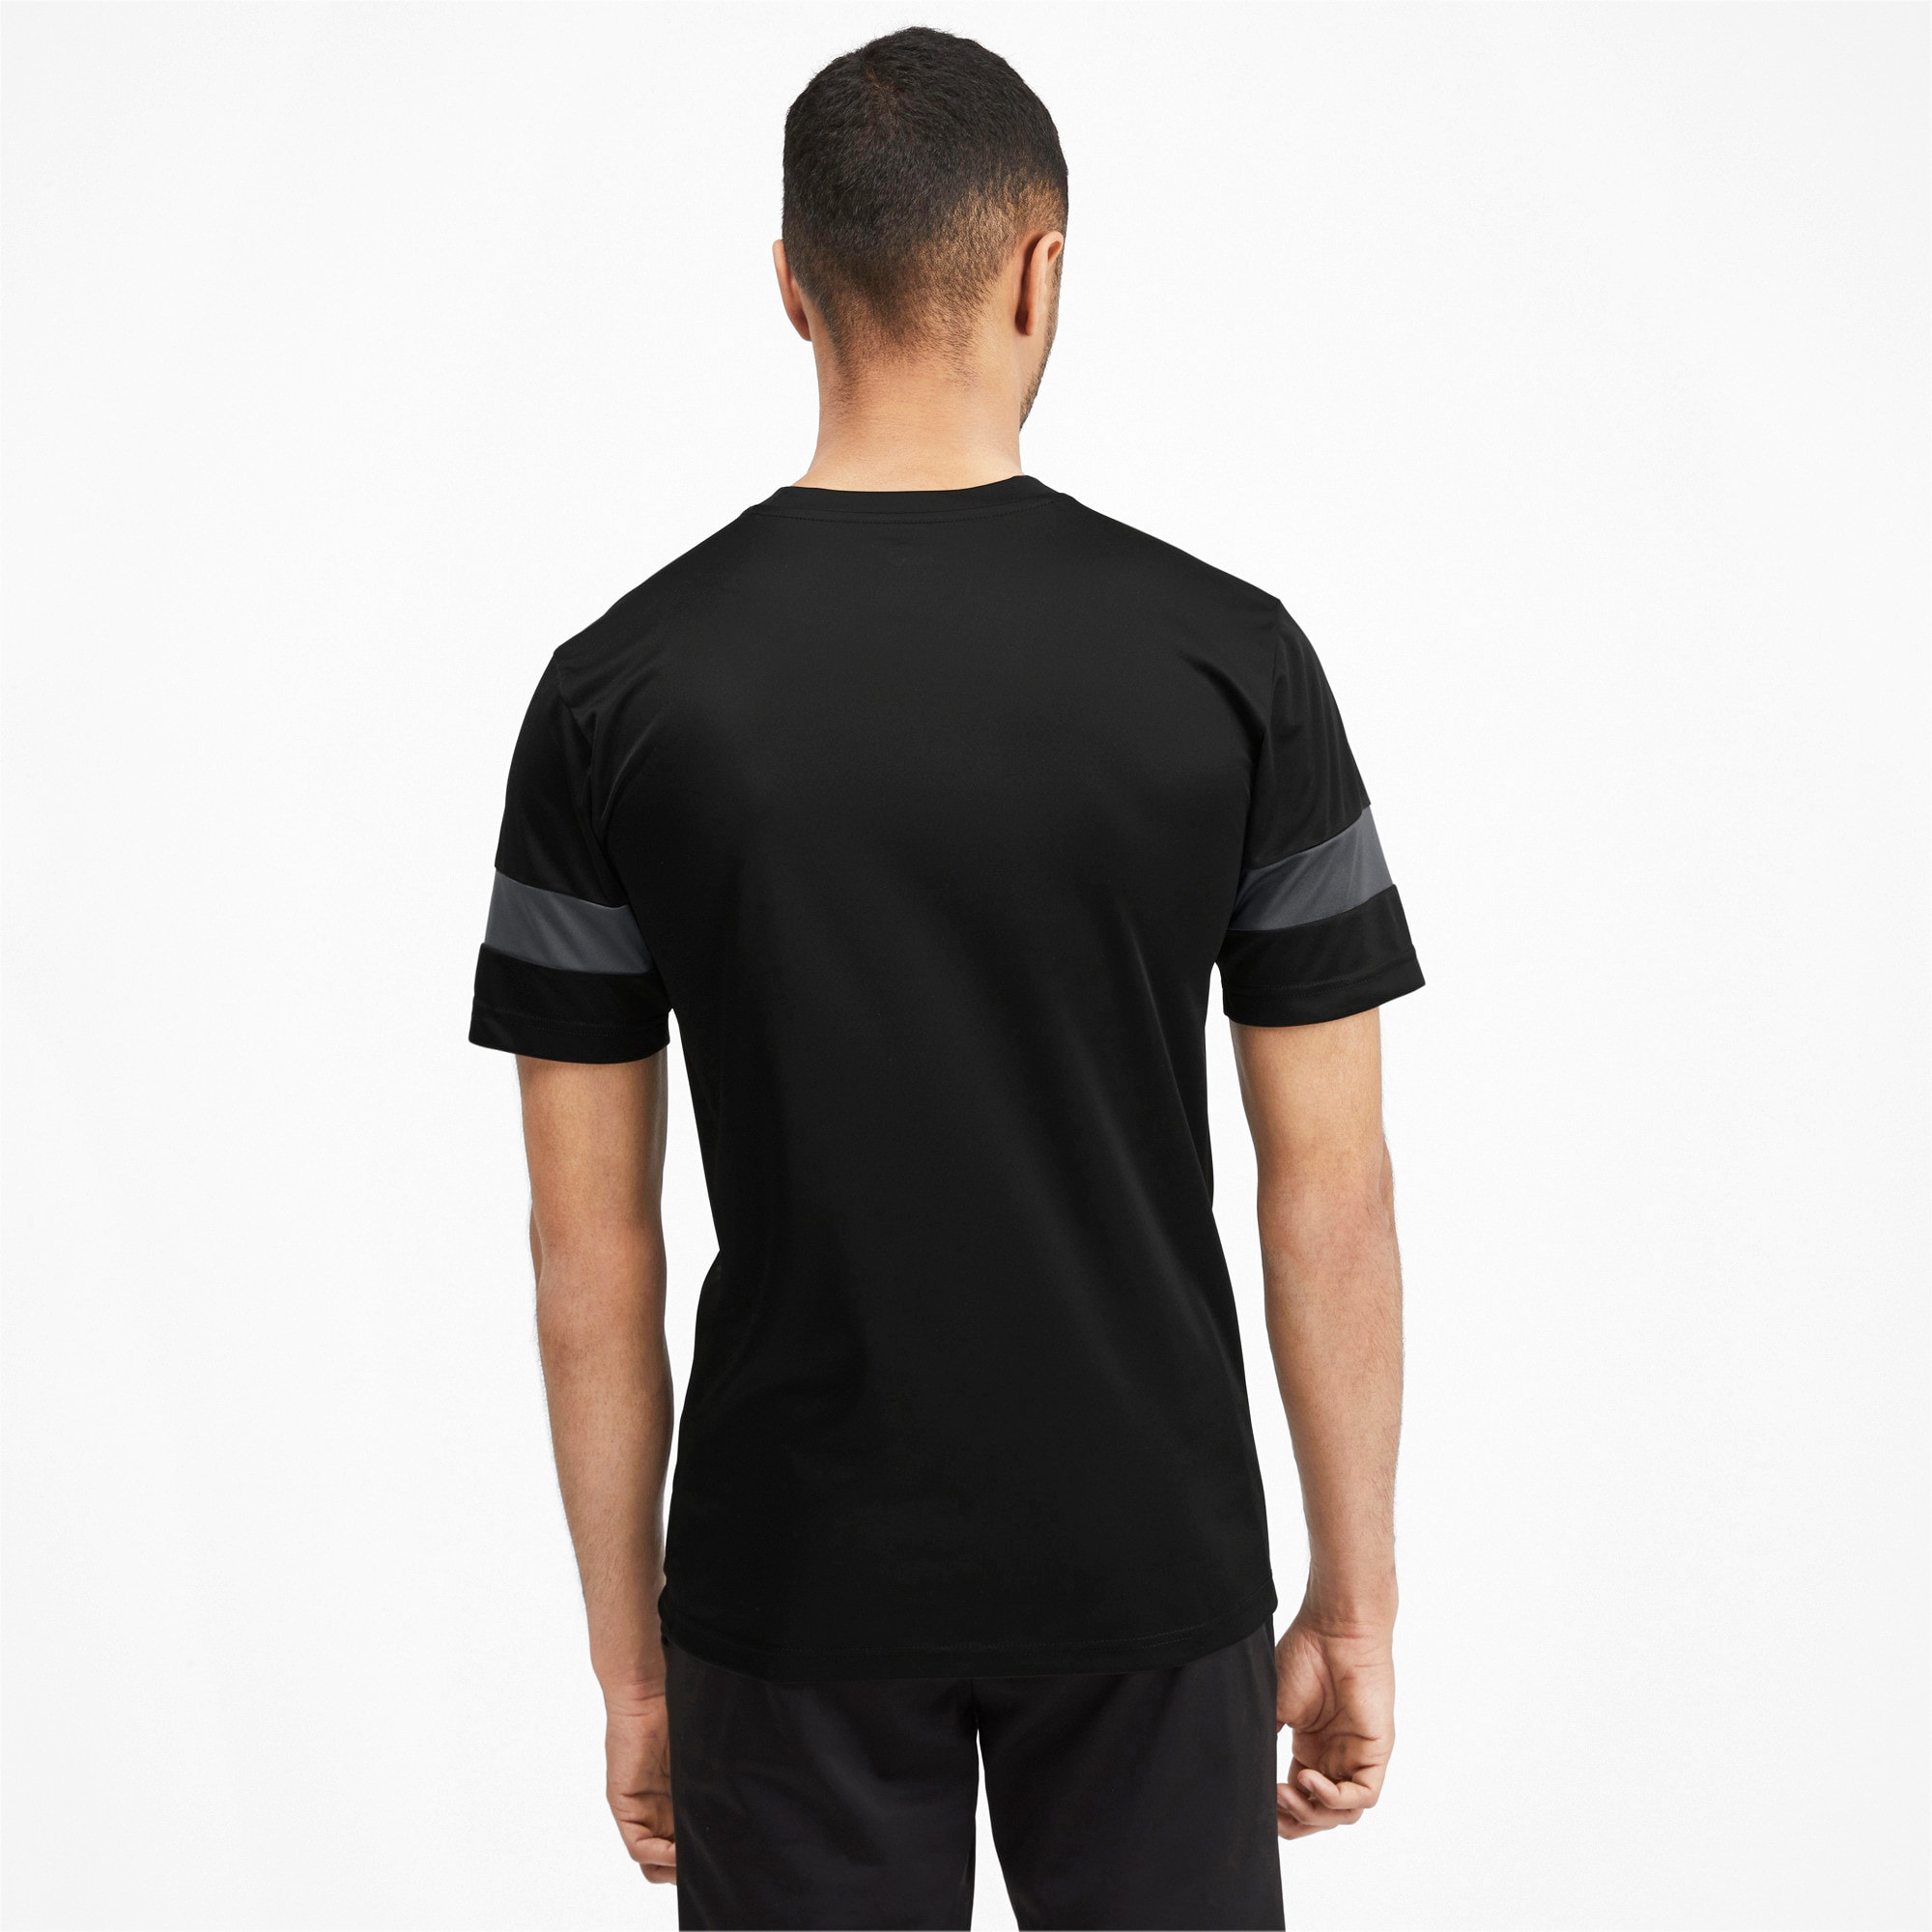 Thumbnail 2 of Herren Trainingsshirt, Puma Black-Asphalt, medium